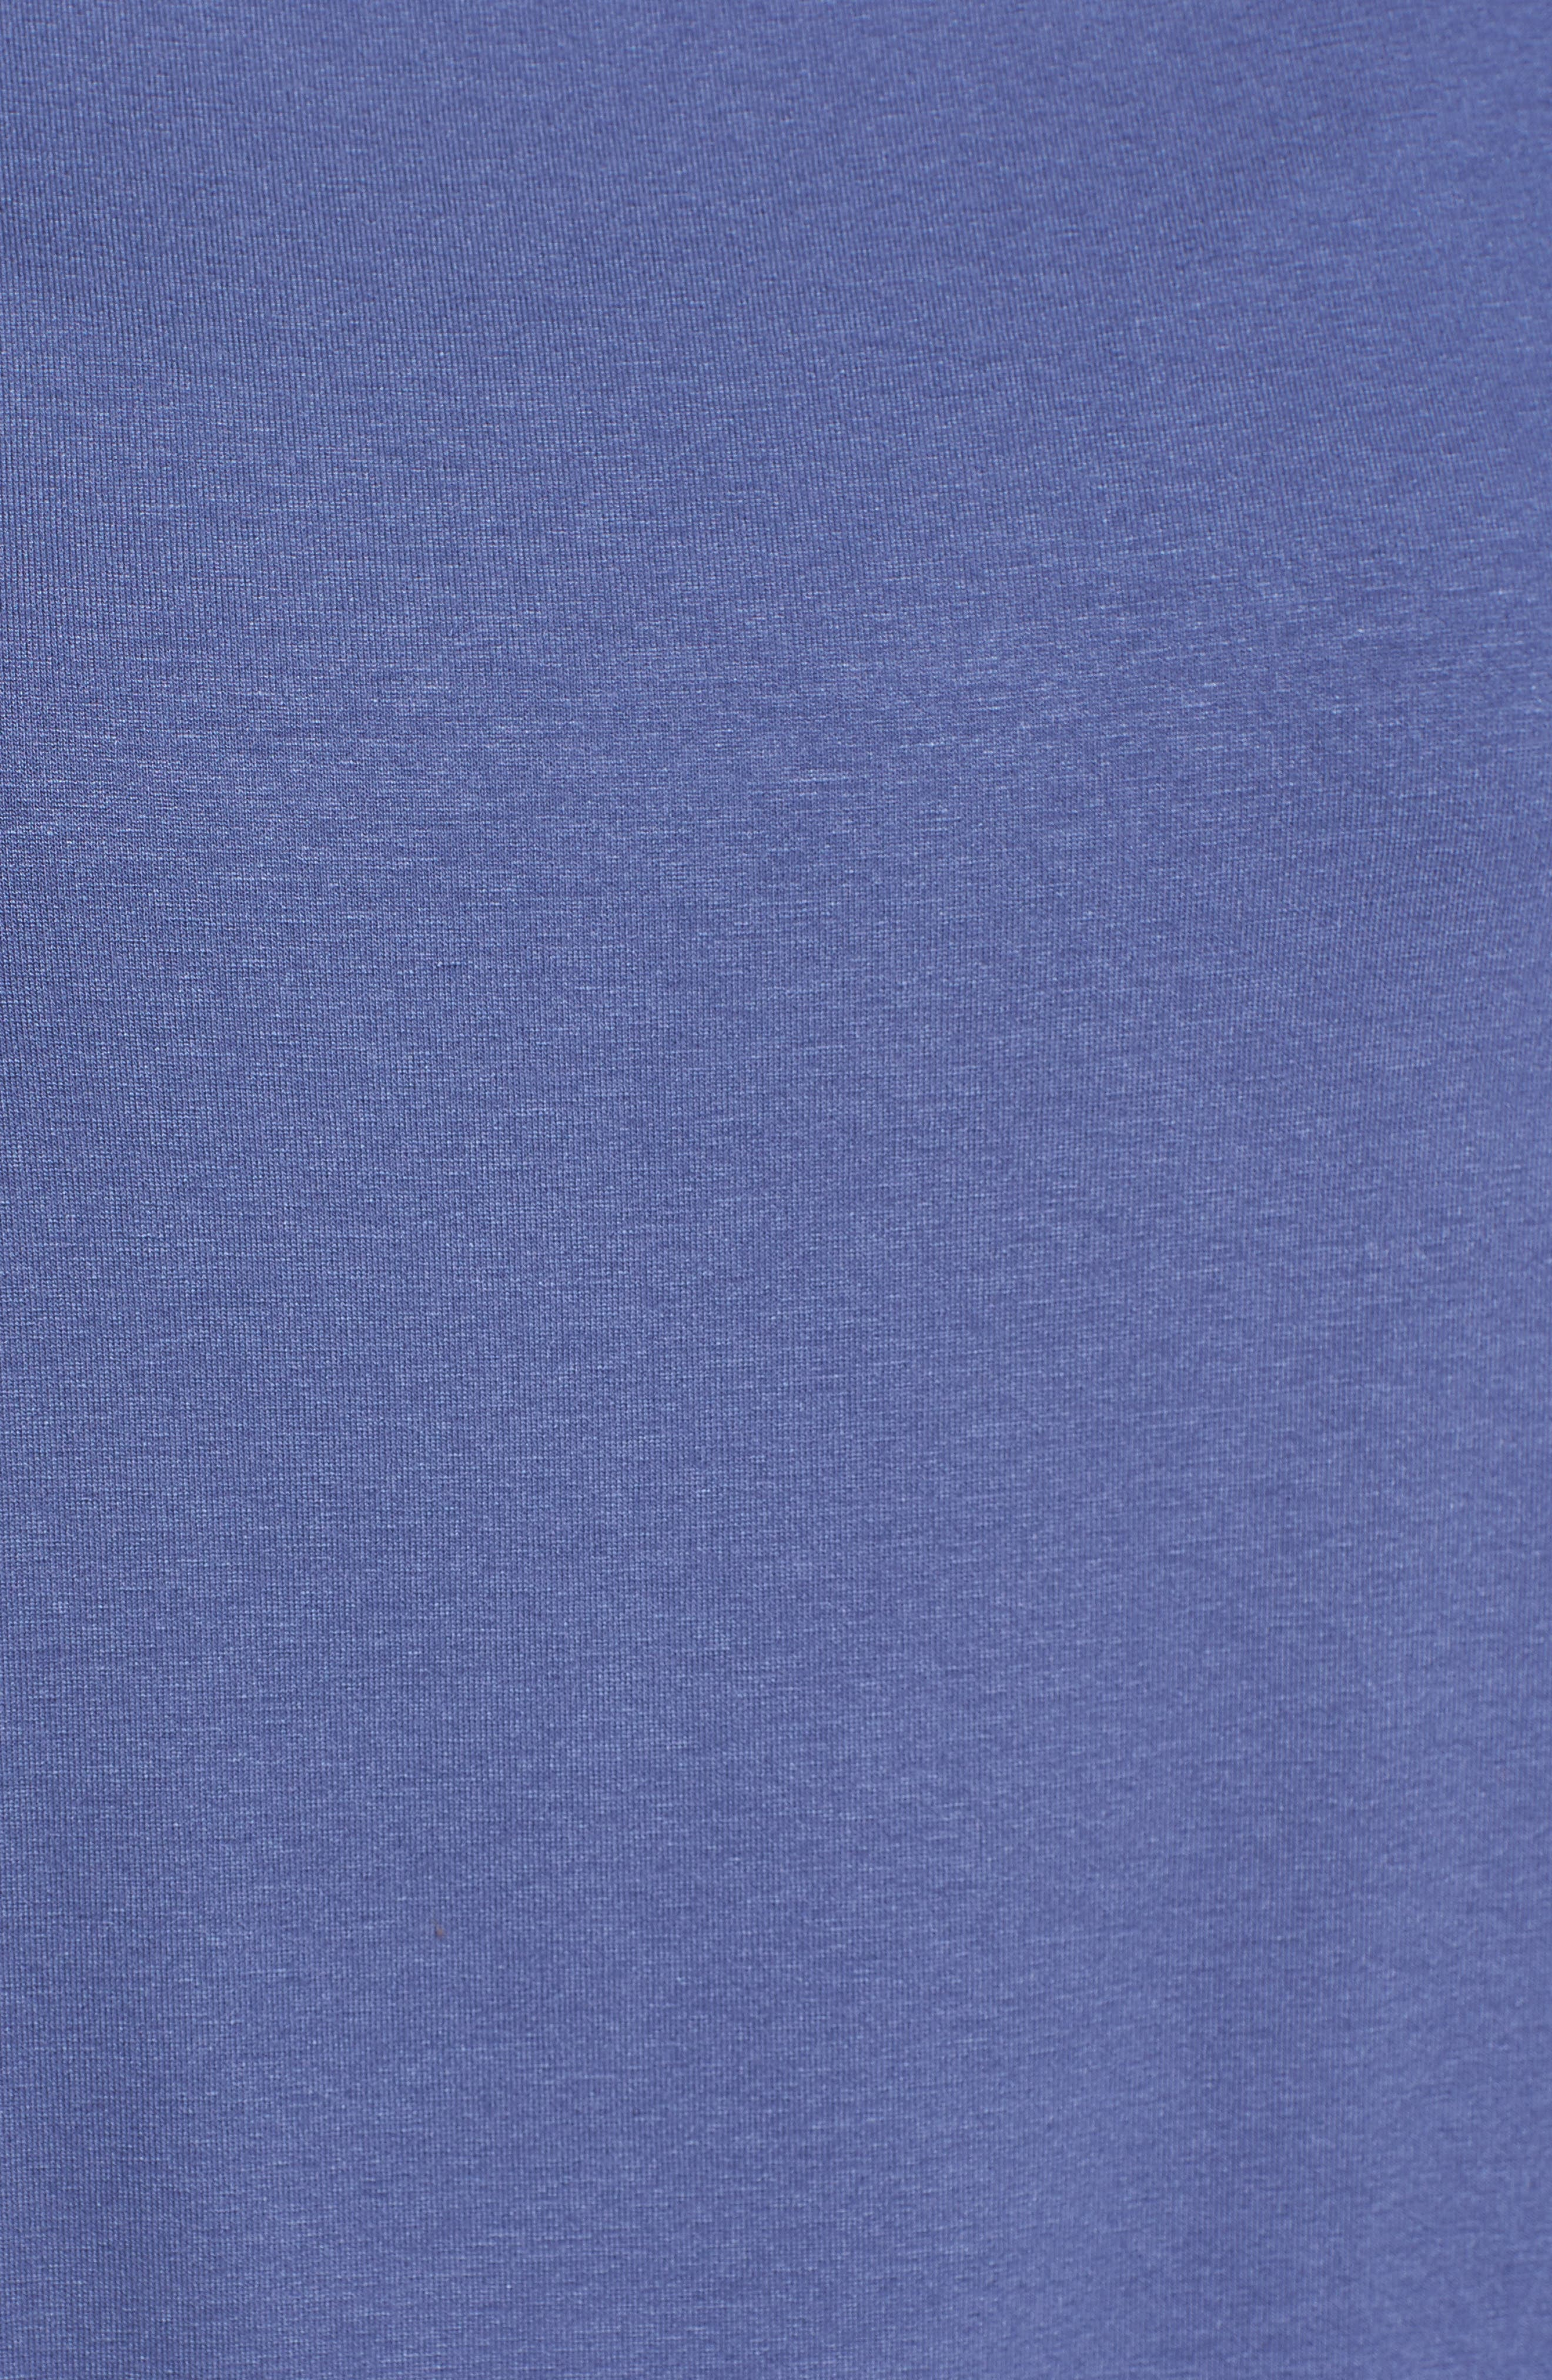 Square Neck Jersey Top,                             Alternate thumbnail 5, color,                             Blue Angel